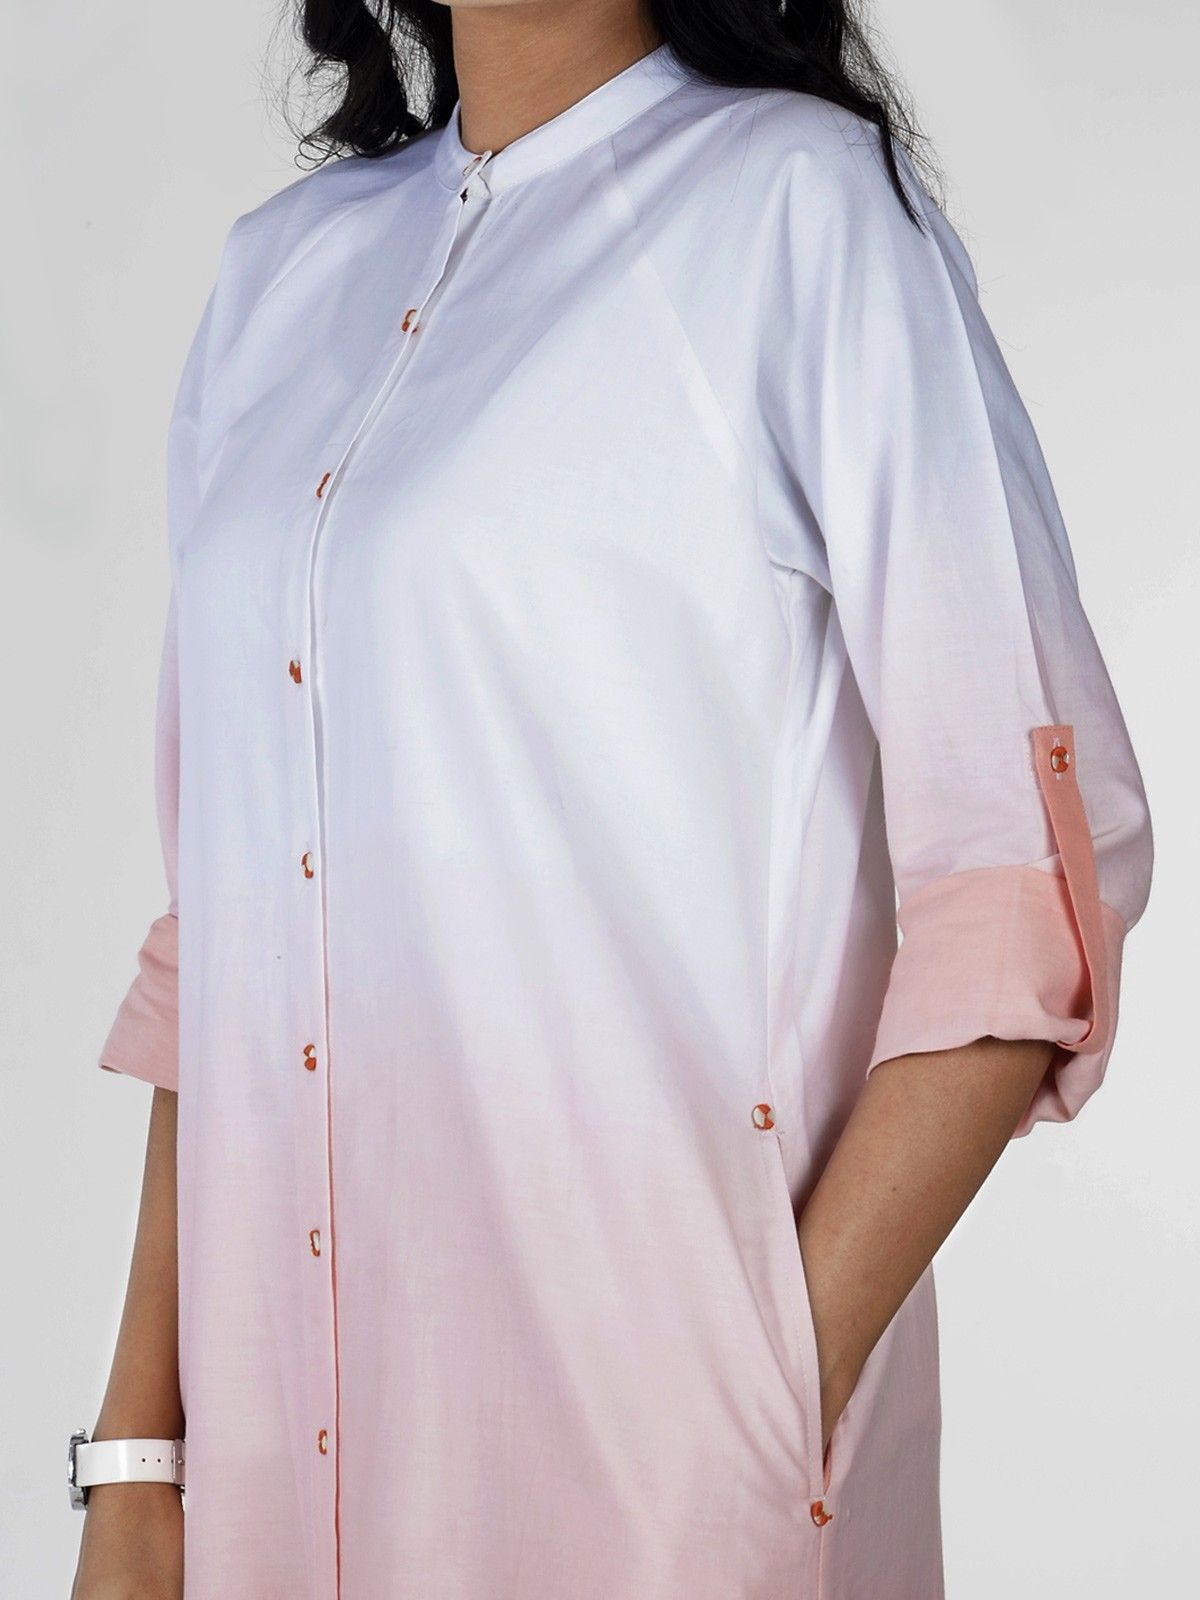 Cantaloupe Ombre Shirt Dress